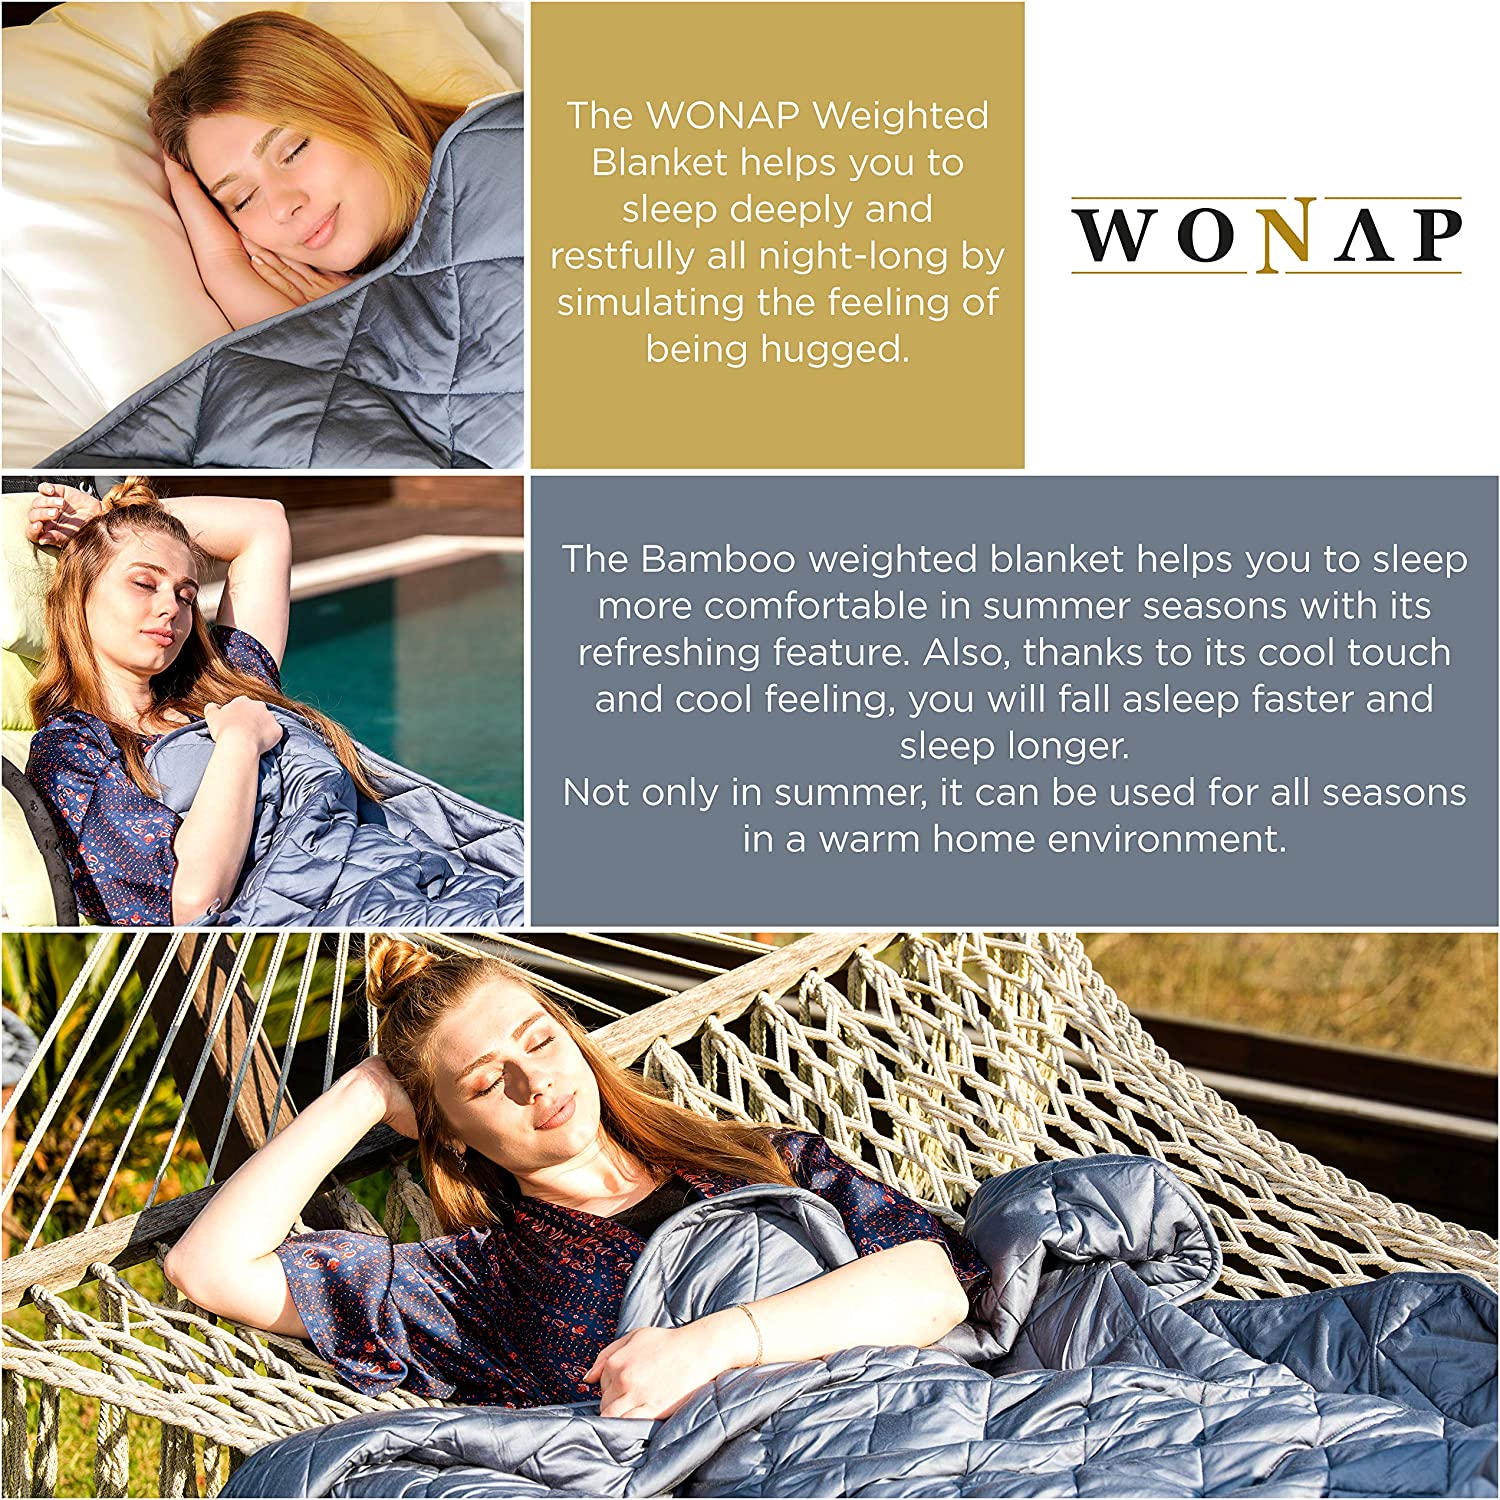 """WONAP Bamboo Weighted Blanket Adult   Cooling Touch   15 lbs   48""""x78"""" Twin Size   100% Natural Bamboo Viscose with Premium Glass Beads   Heavy Blanket"""